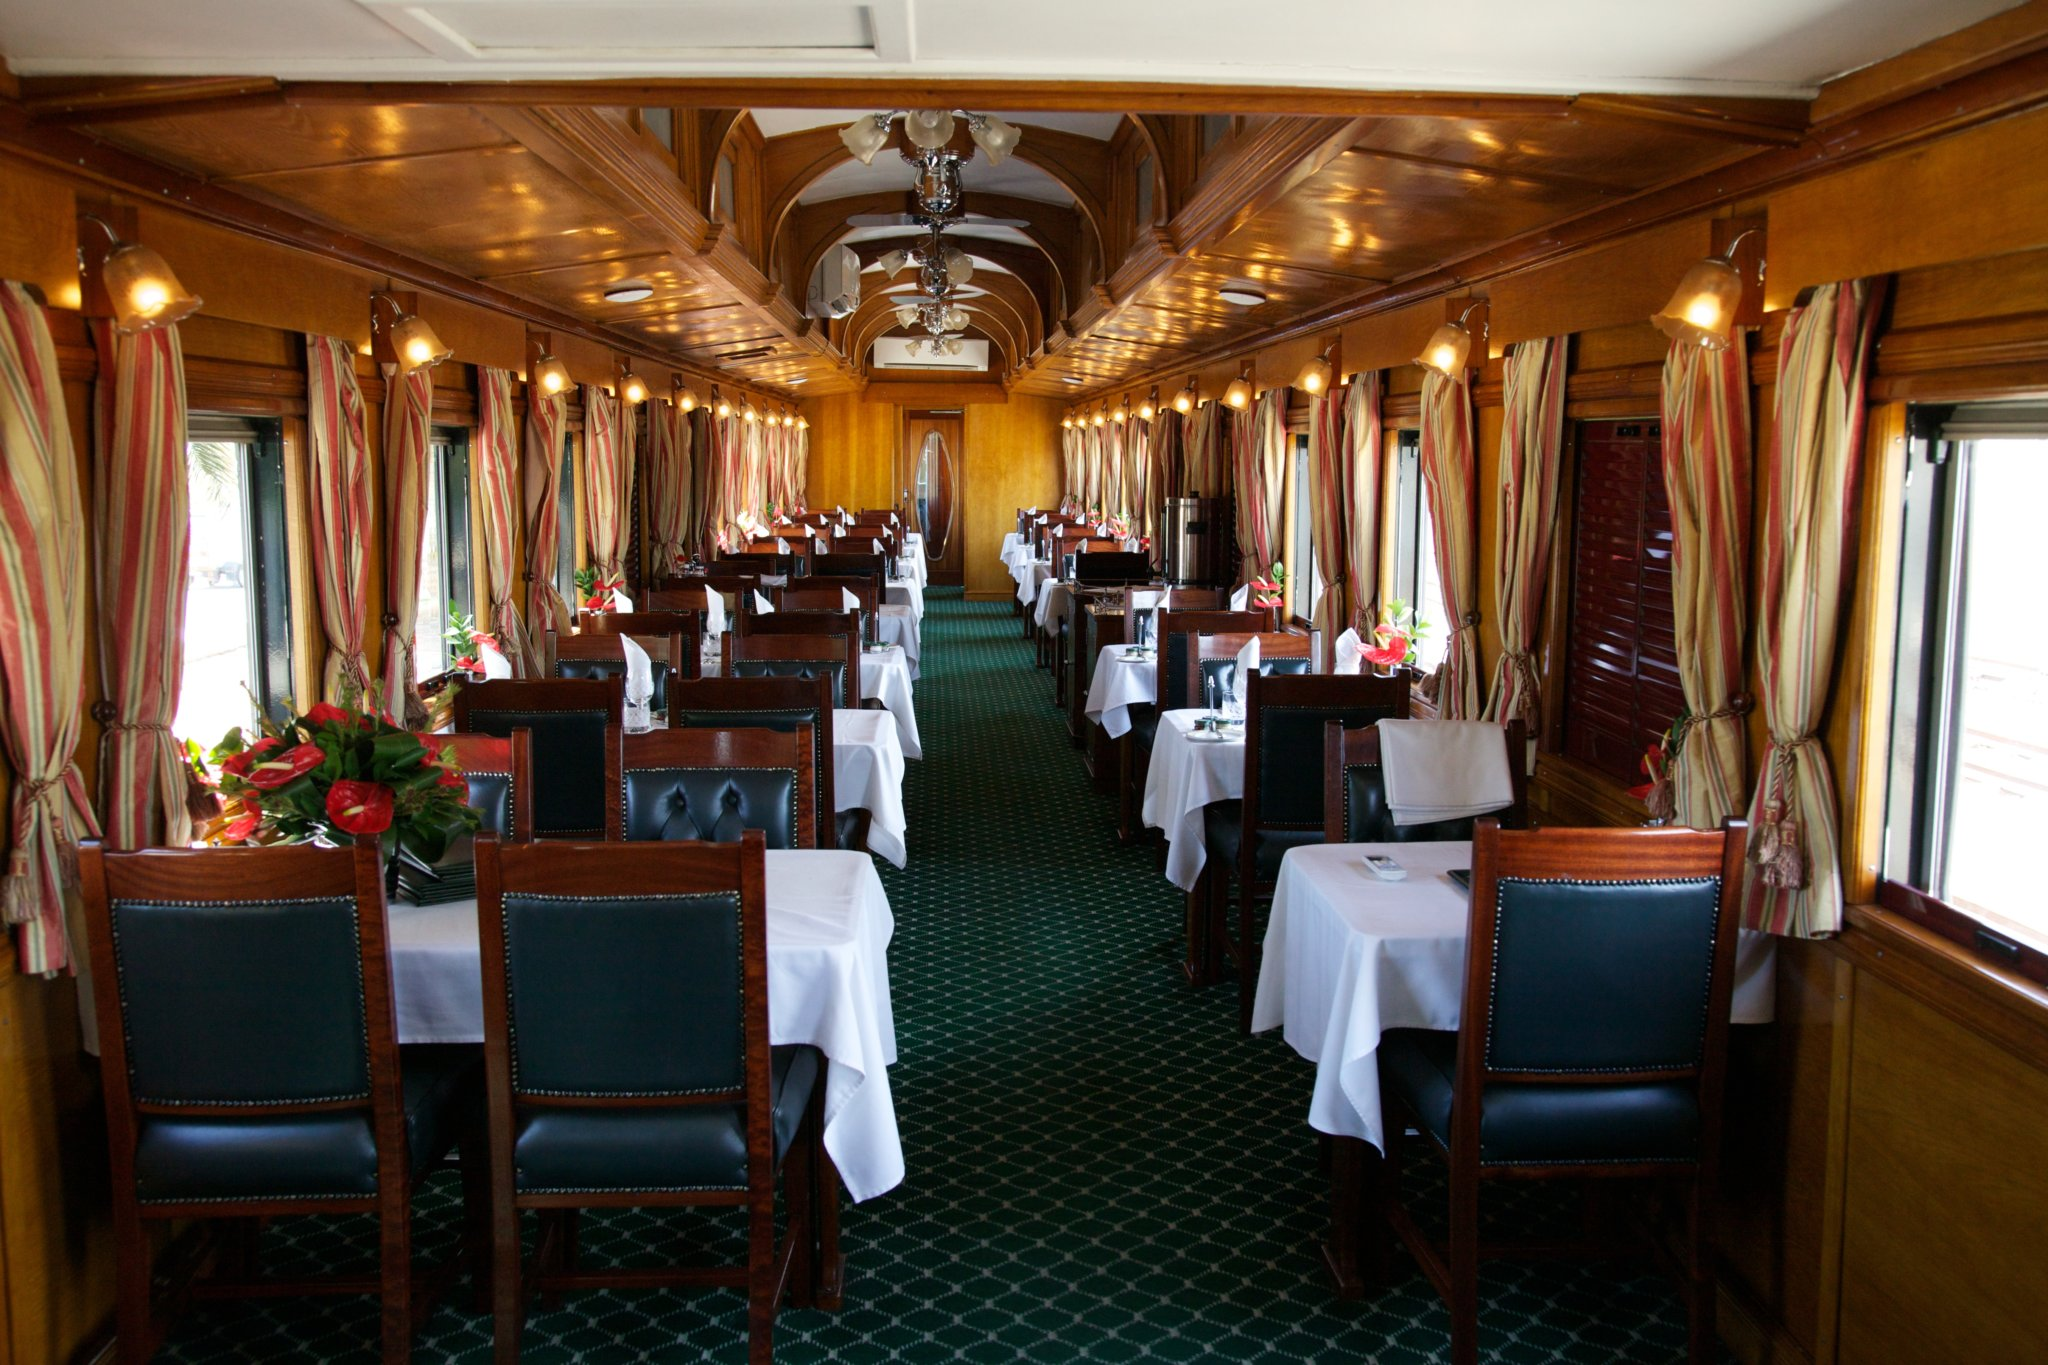 One of the dining cars in the Rovos Rail Pride of Africa all set up to serve lunch.